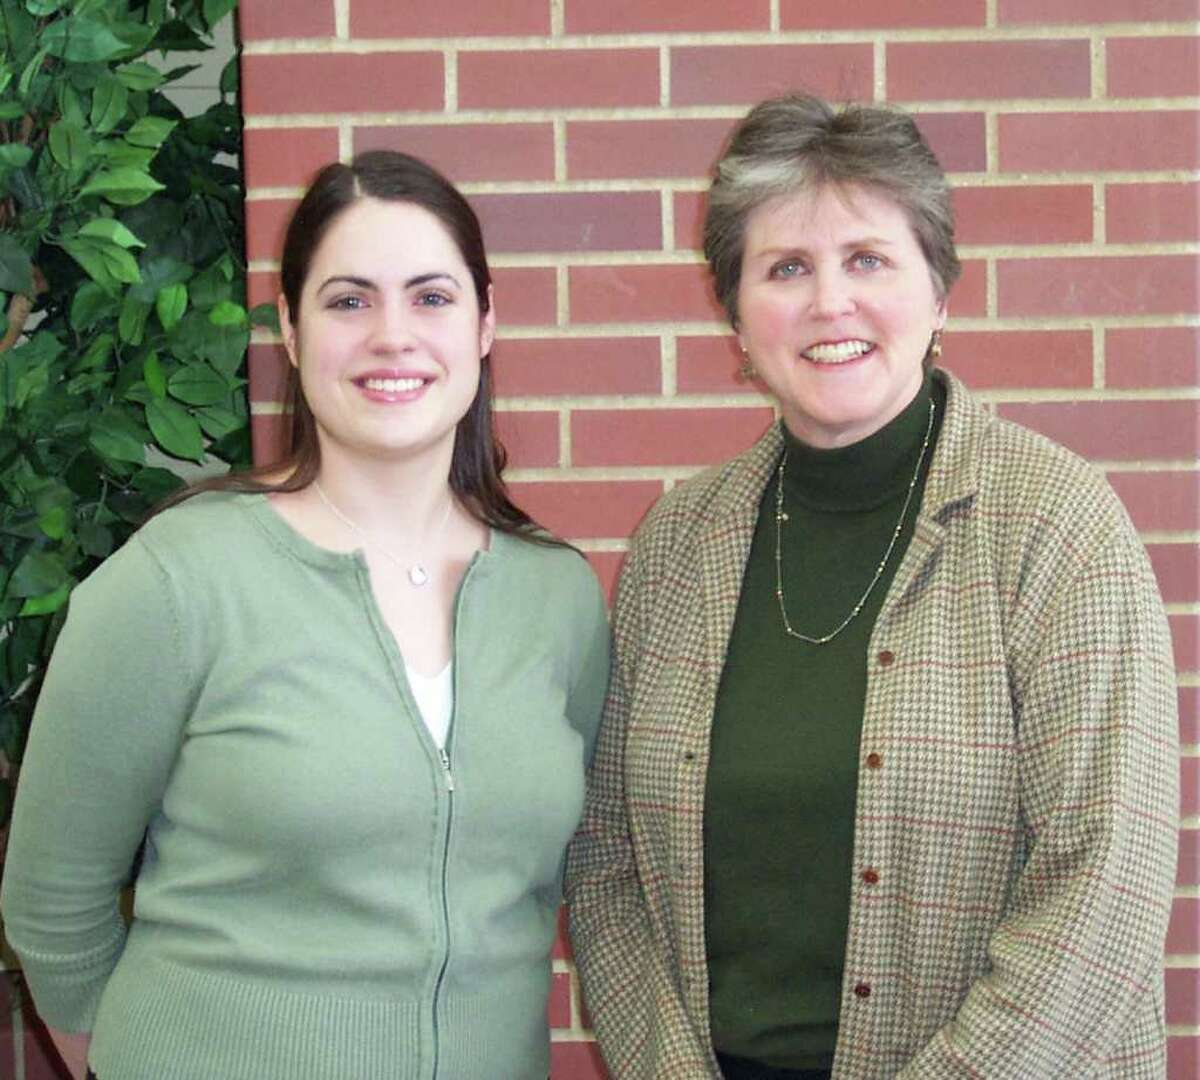 Sarah Ruggiero, director of social work at Waveny Care Center, and Ilene Sumberg, director of Wavenyís Adult Day Program, are co-leaders of the caregiver support group offered through Waveny Care Network.